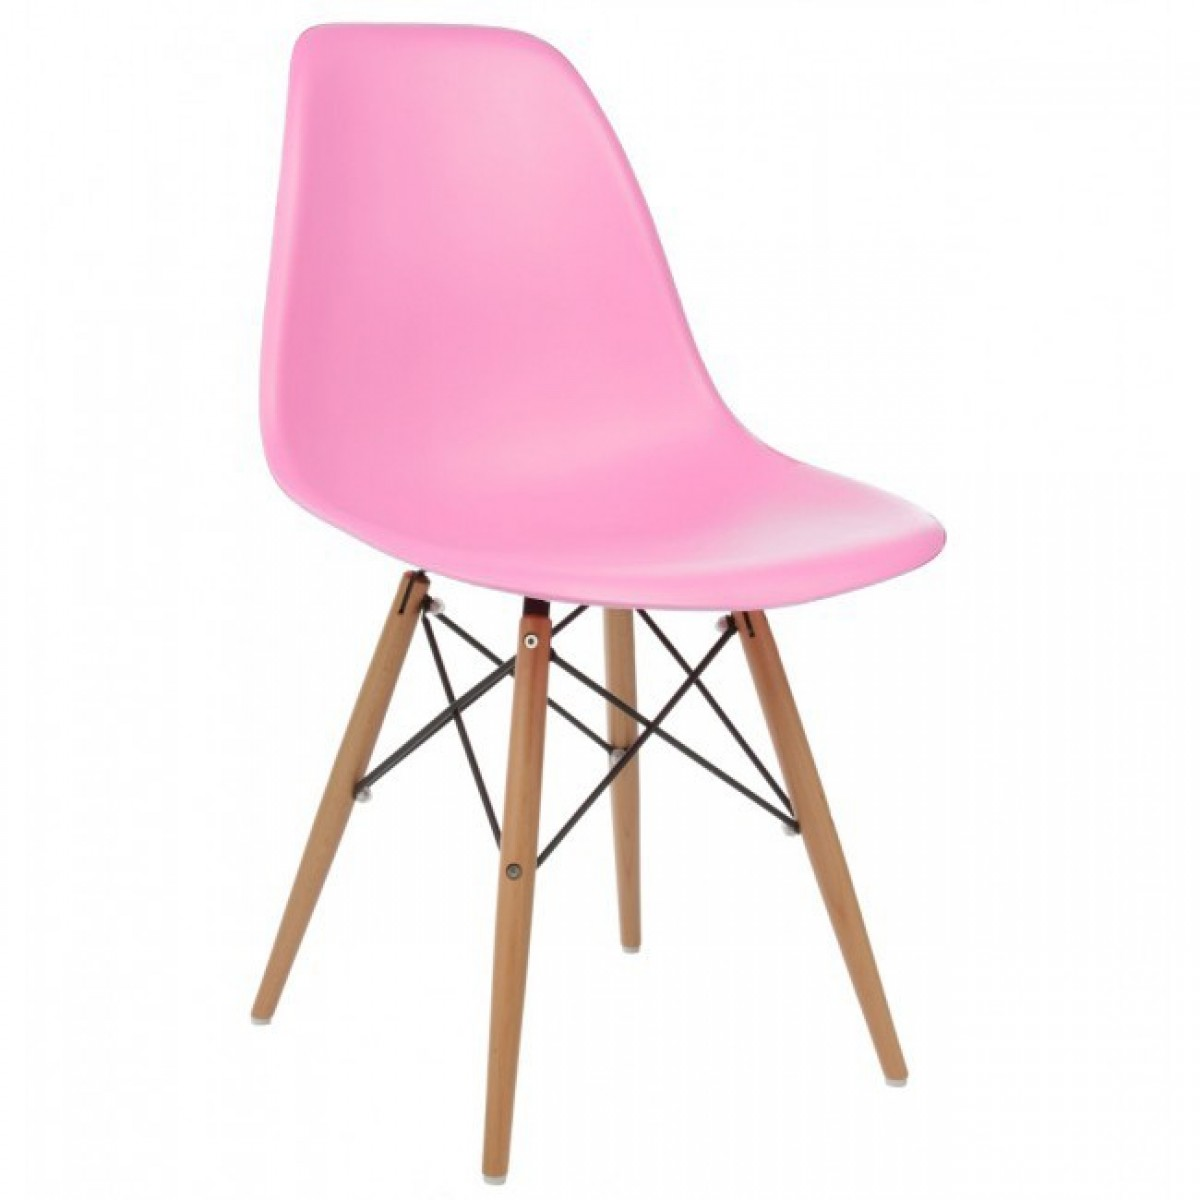 Perfect Set Of 4 DSW Molded Pink Plastic Dining Shell Chair With Wood Eiffel Legs